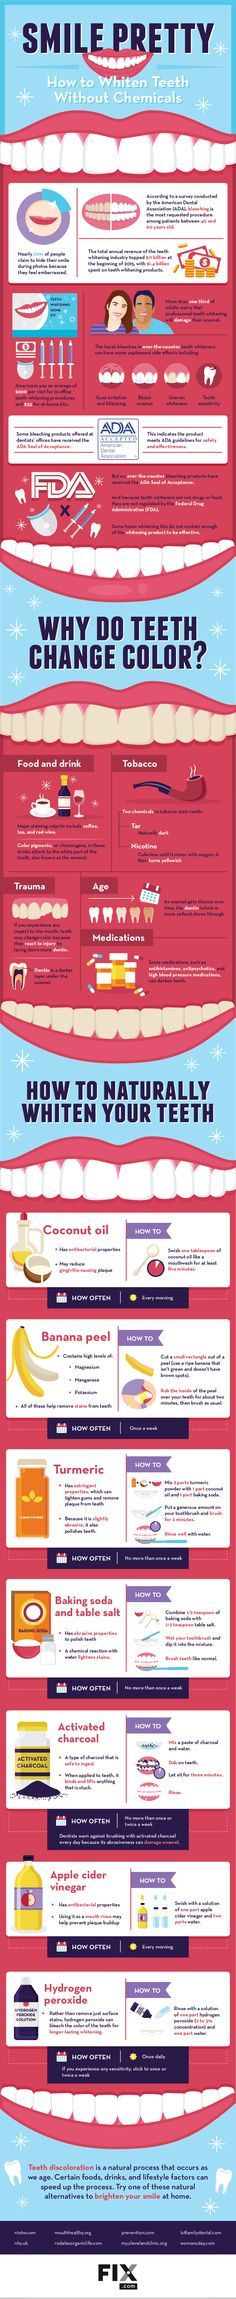 Avoid tooth sensitivity by using a chemical-free teeth whitener, that you may???